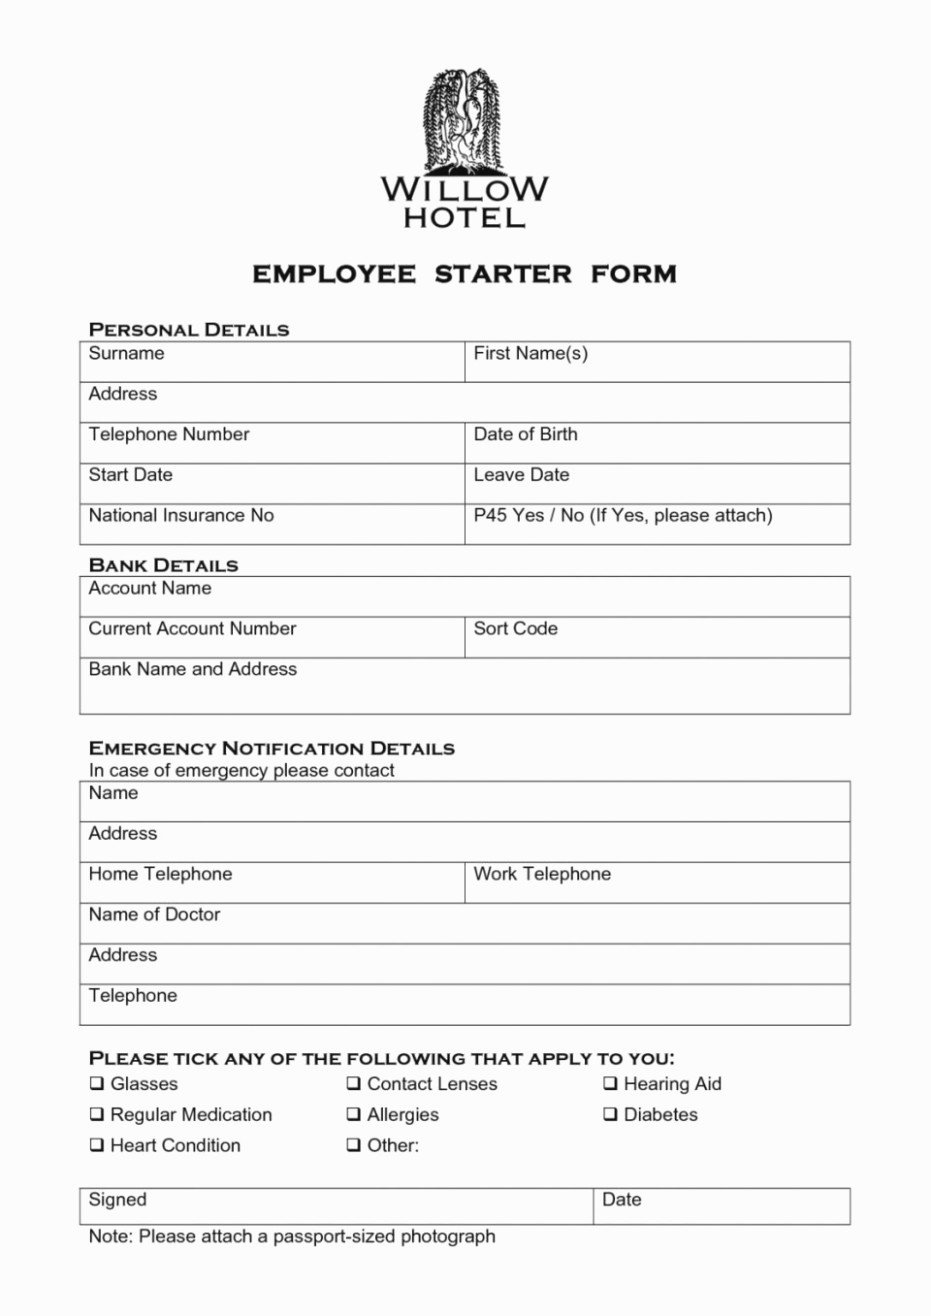 New Hire form Template Inspirational the Modern Rules New